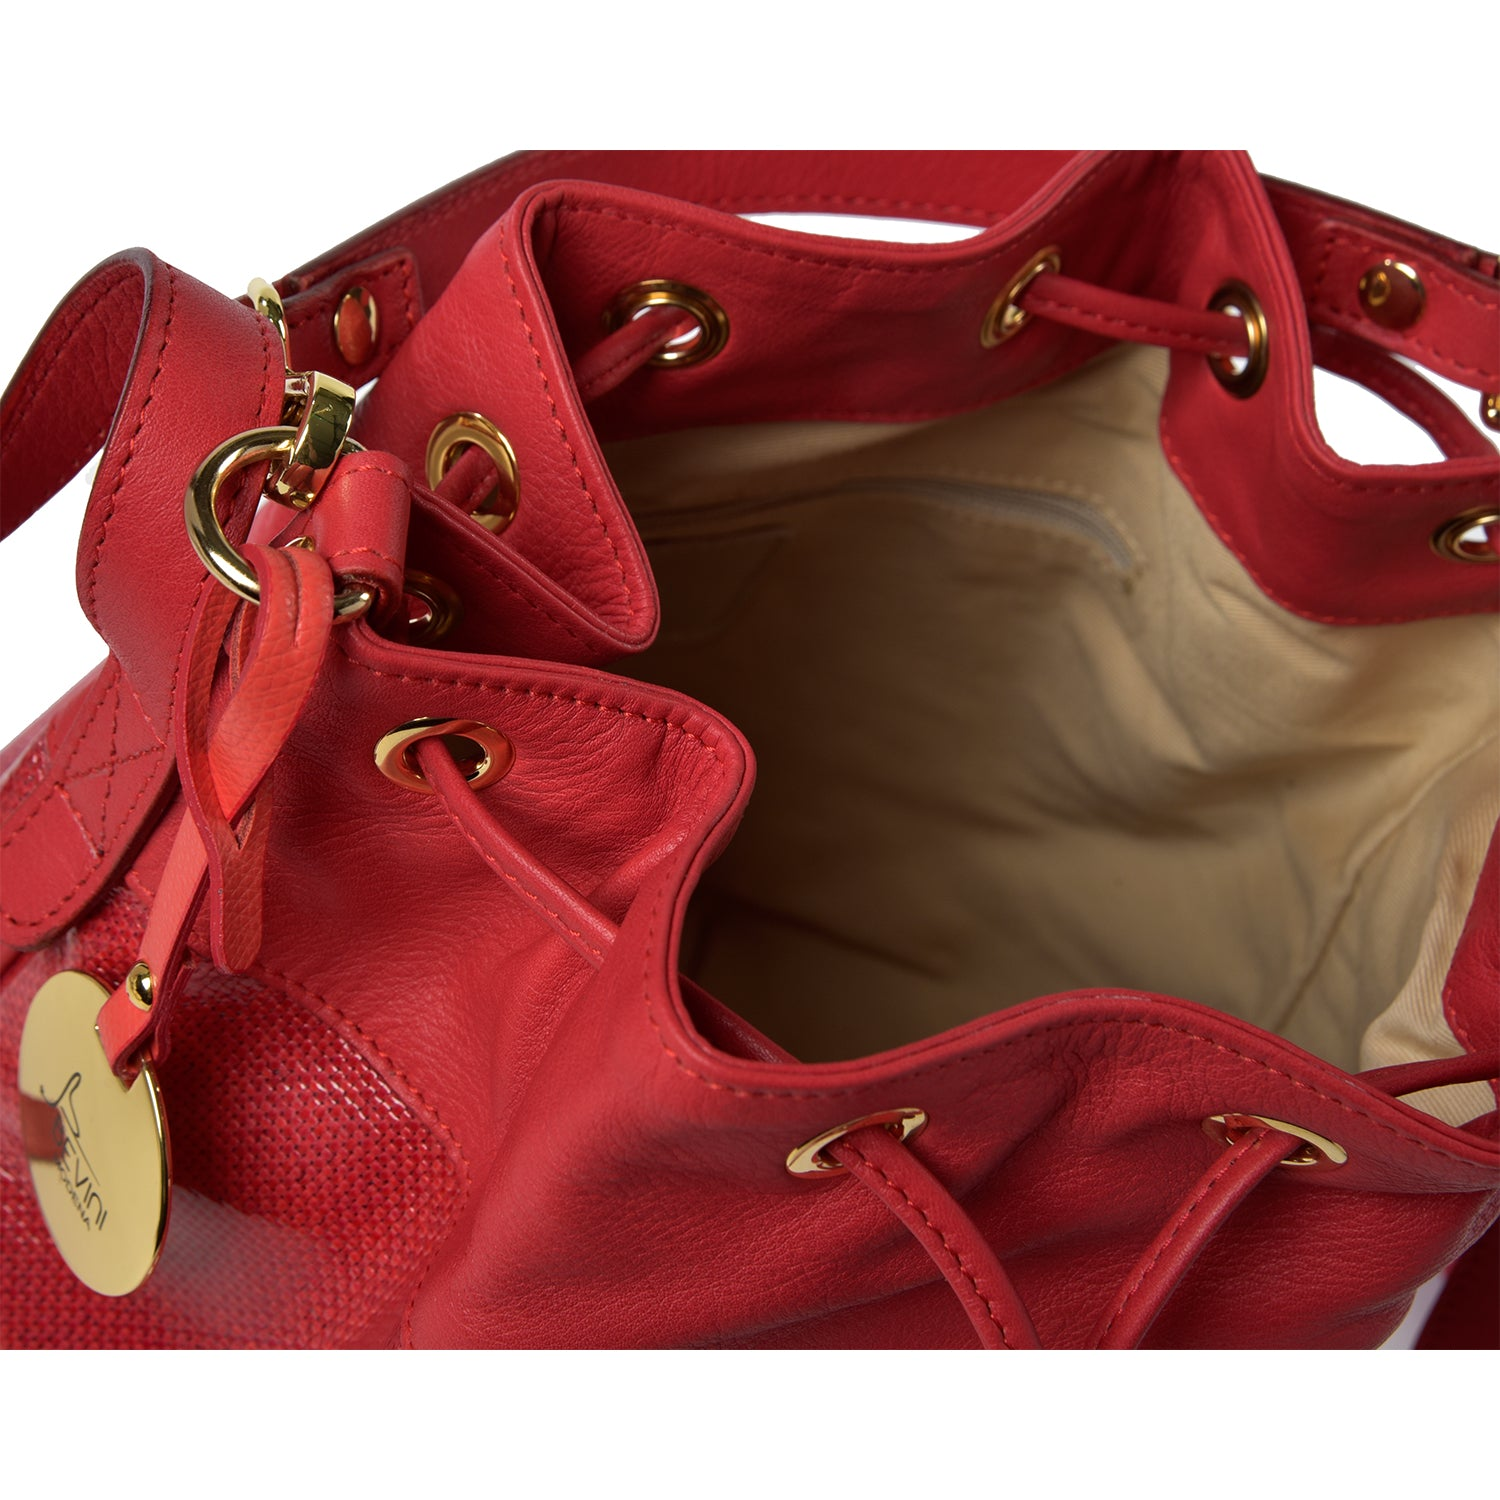 One & Only Siena Red Leather Shoulder Bag (19005M5)